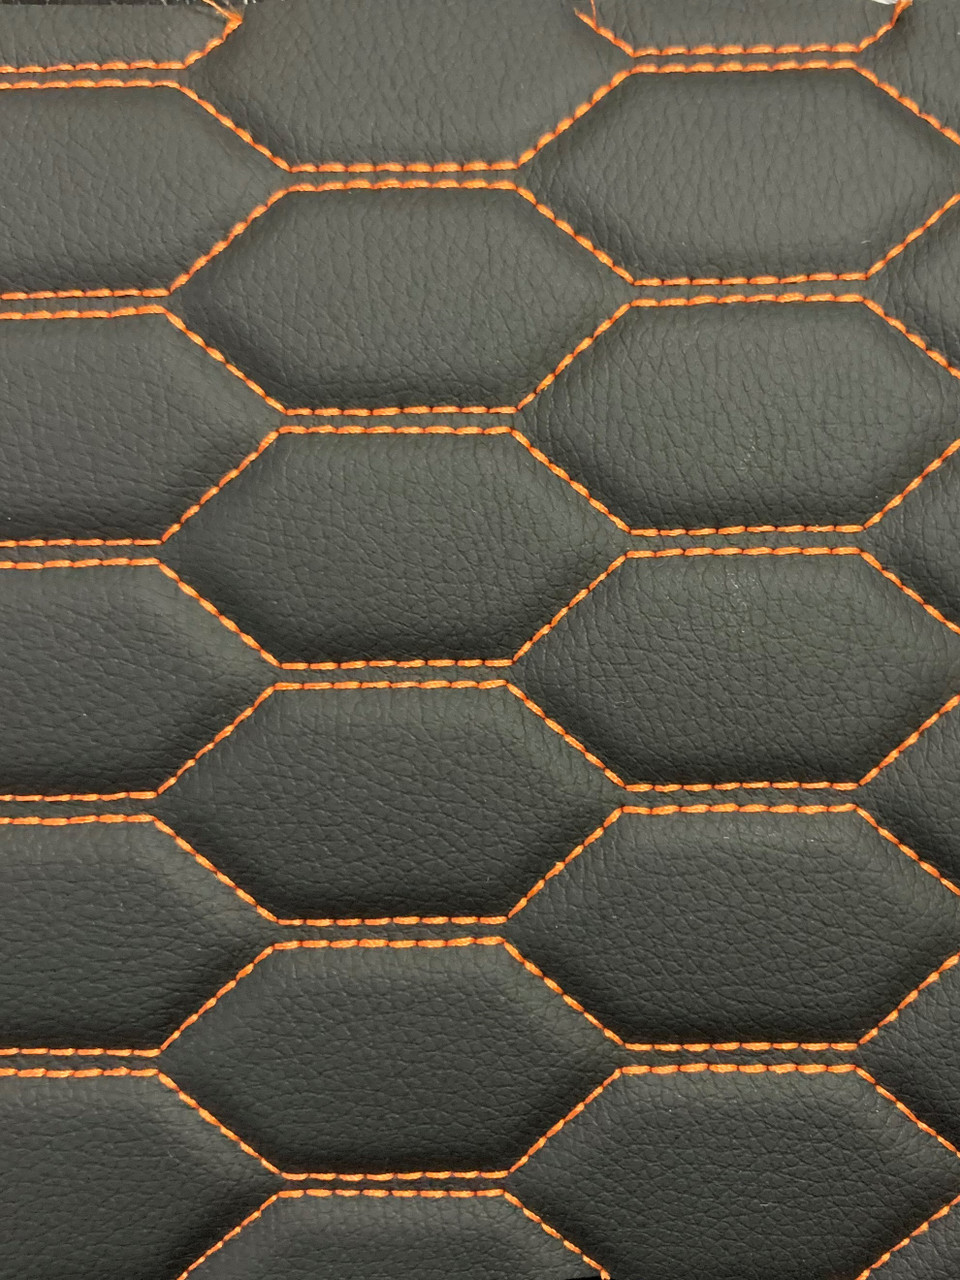 Real quilted automotive grade black vinyl with orange stitching